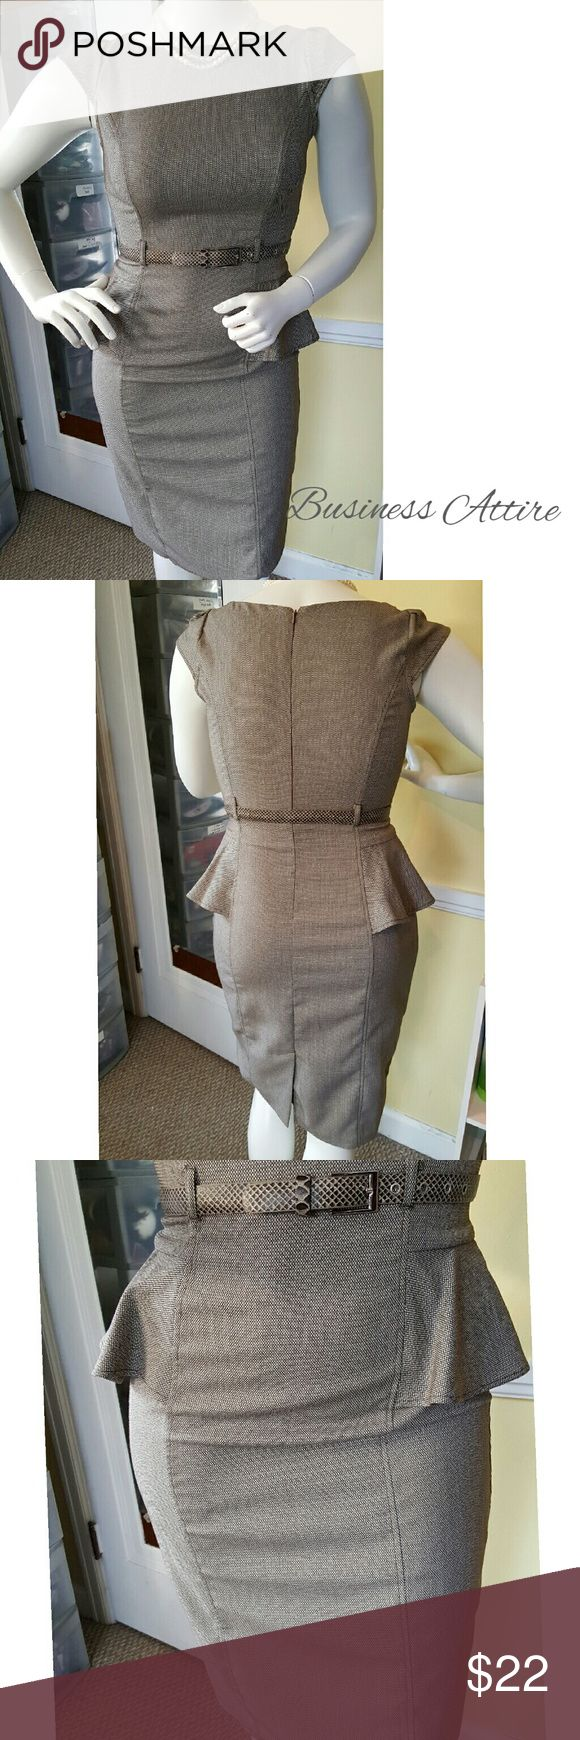 Belted peplum midi dress. Brown and beige textured belted peplum midi dress. This dress is very stylish while being very professional at the same time. Polyester/rayon/spandex mix material. Size 11/12. Worn twice,  excellent condition. No signs of wear or tear. XOXO Dresses Midi